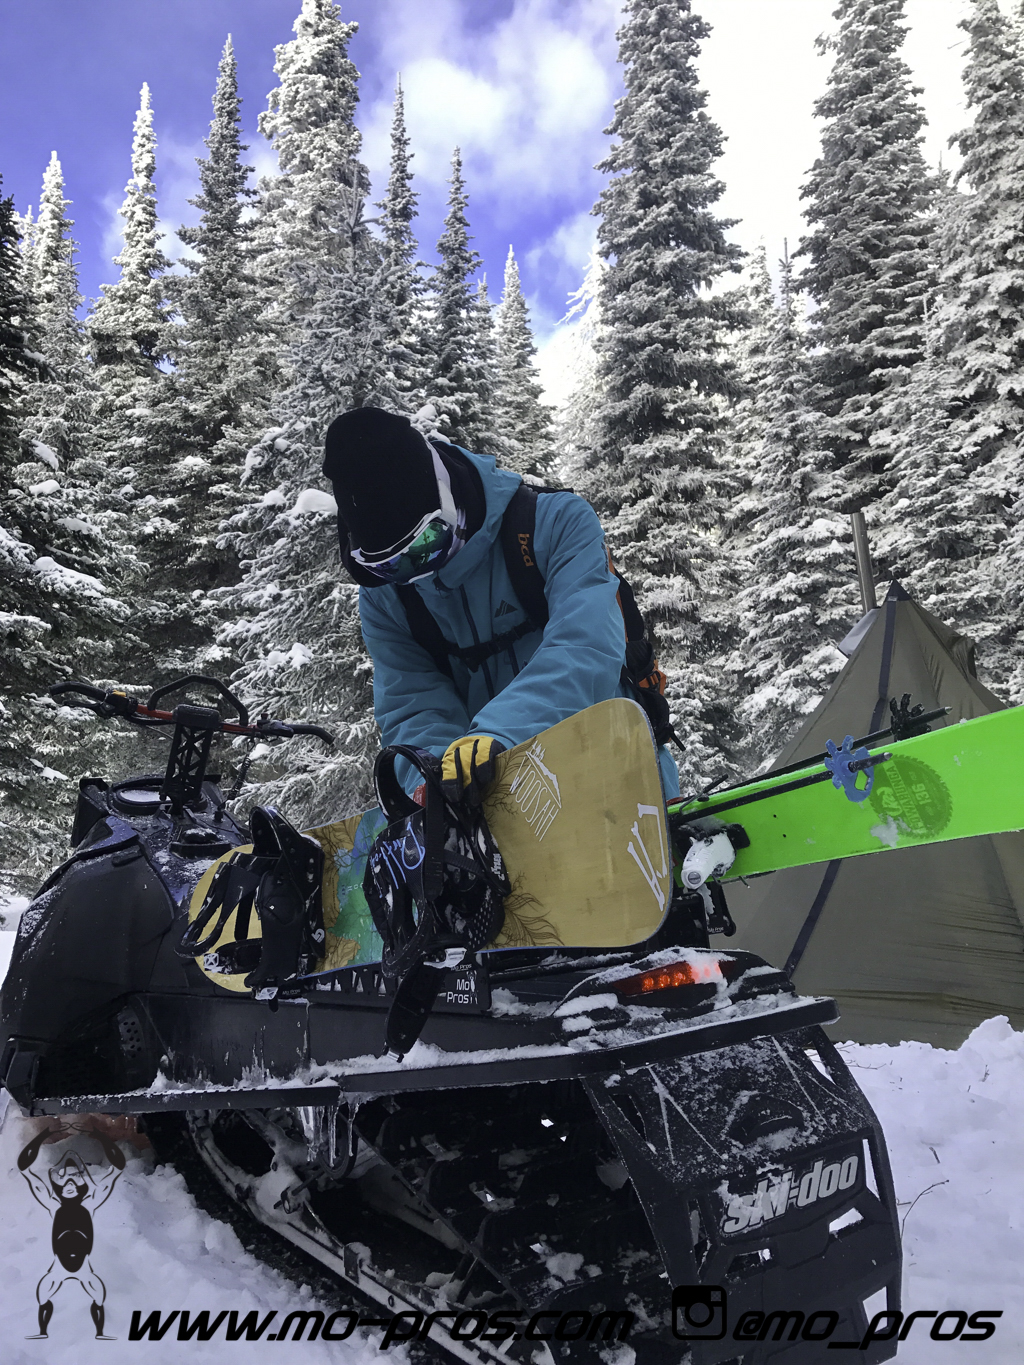 81_Backcountry _Backcountry United_CFR rack_Cheetah Factory Racing_gas Rack_Gear_Gun Rack_LinQ Snowboard Ski_Rack_Ski_Snowbike_snowboard_Snowboard rack_Snowboarding_Snowmobile_snowmobile bag_timbersl.jpg